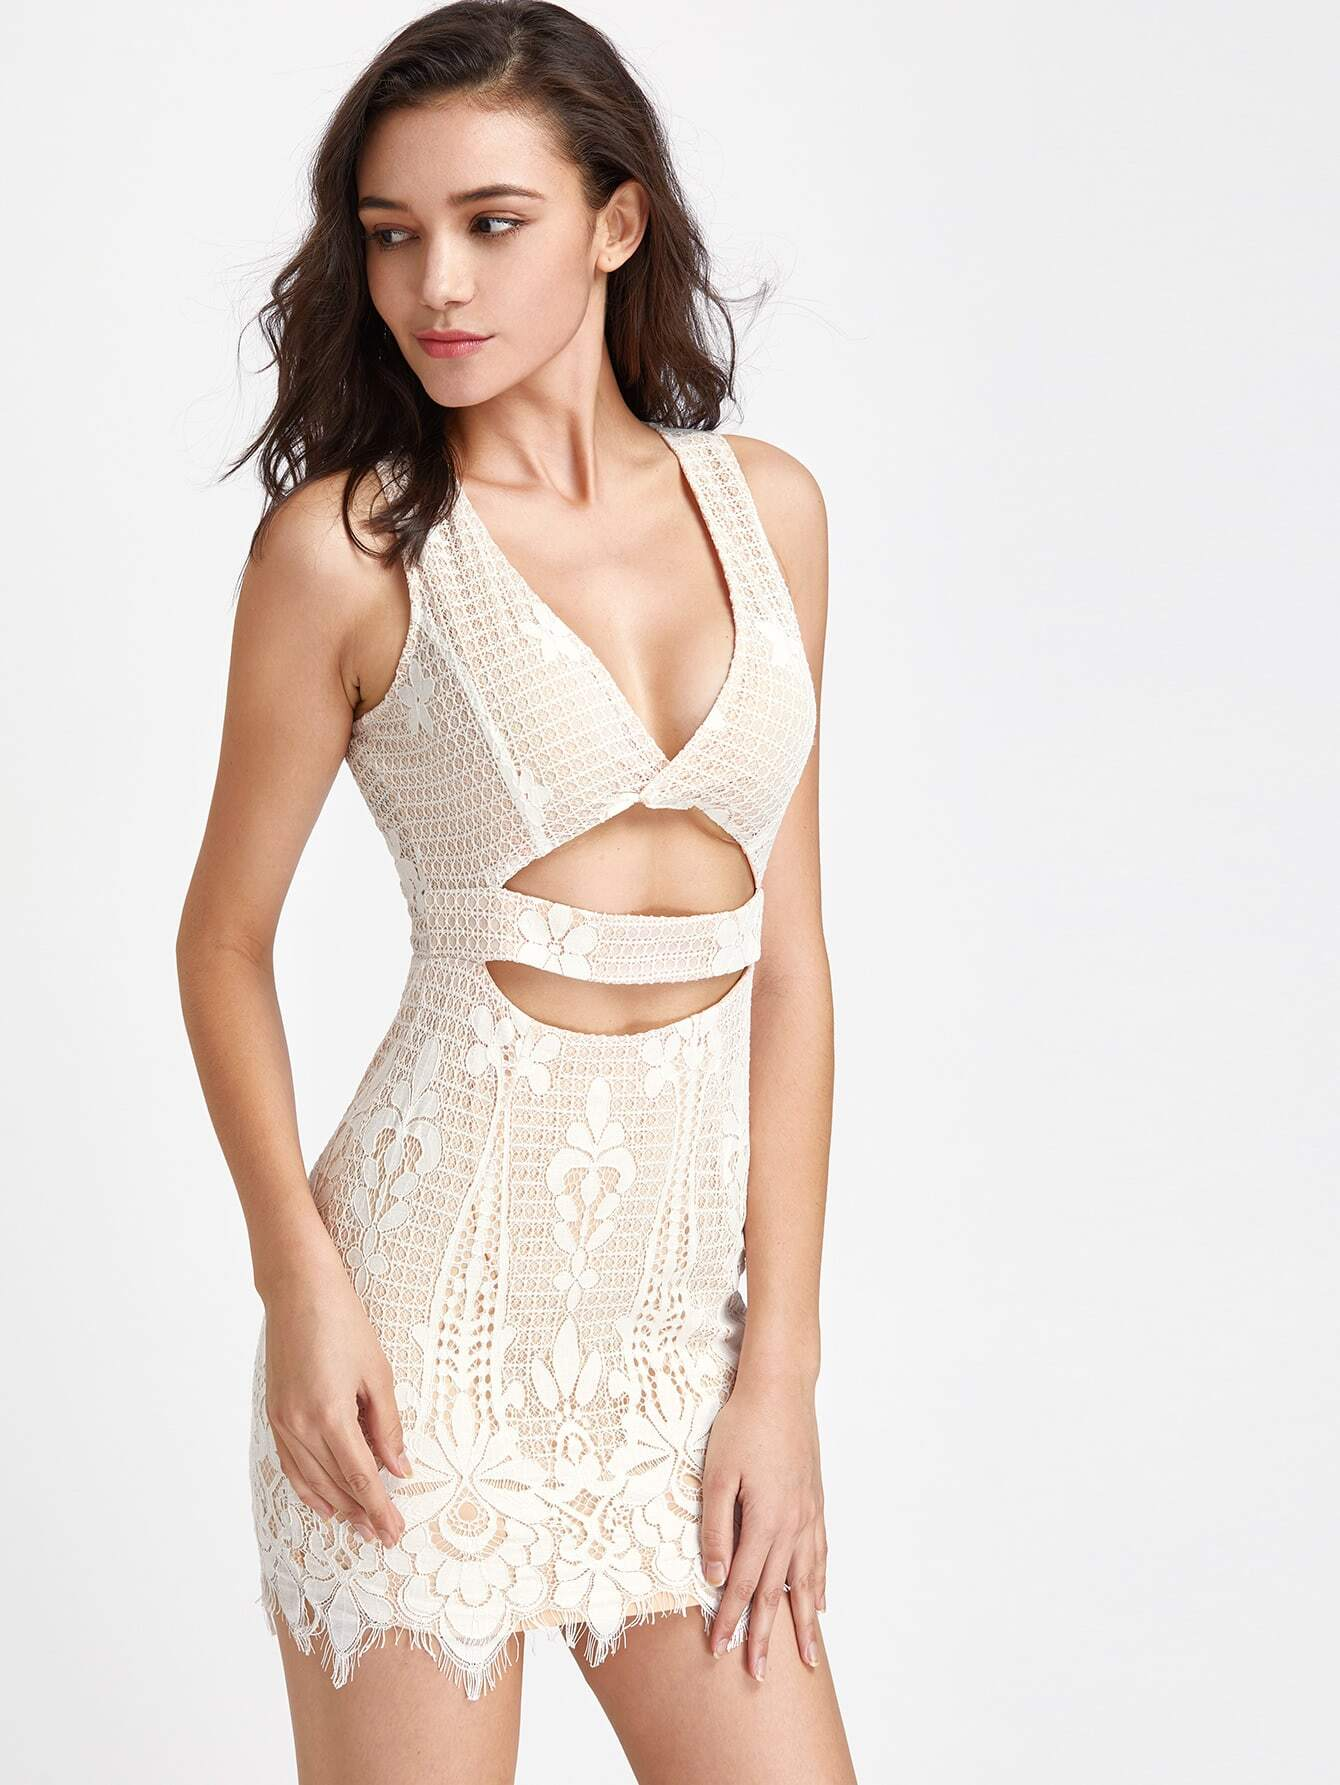 Plunging V-Neckline Cut Out Midriff Lace Dress dress170410403